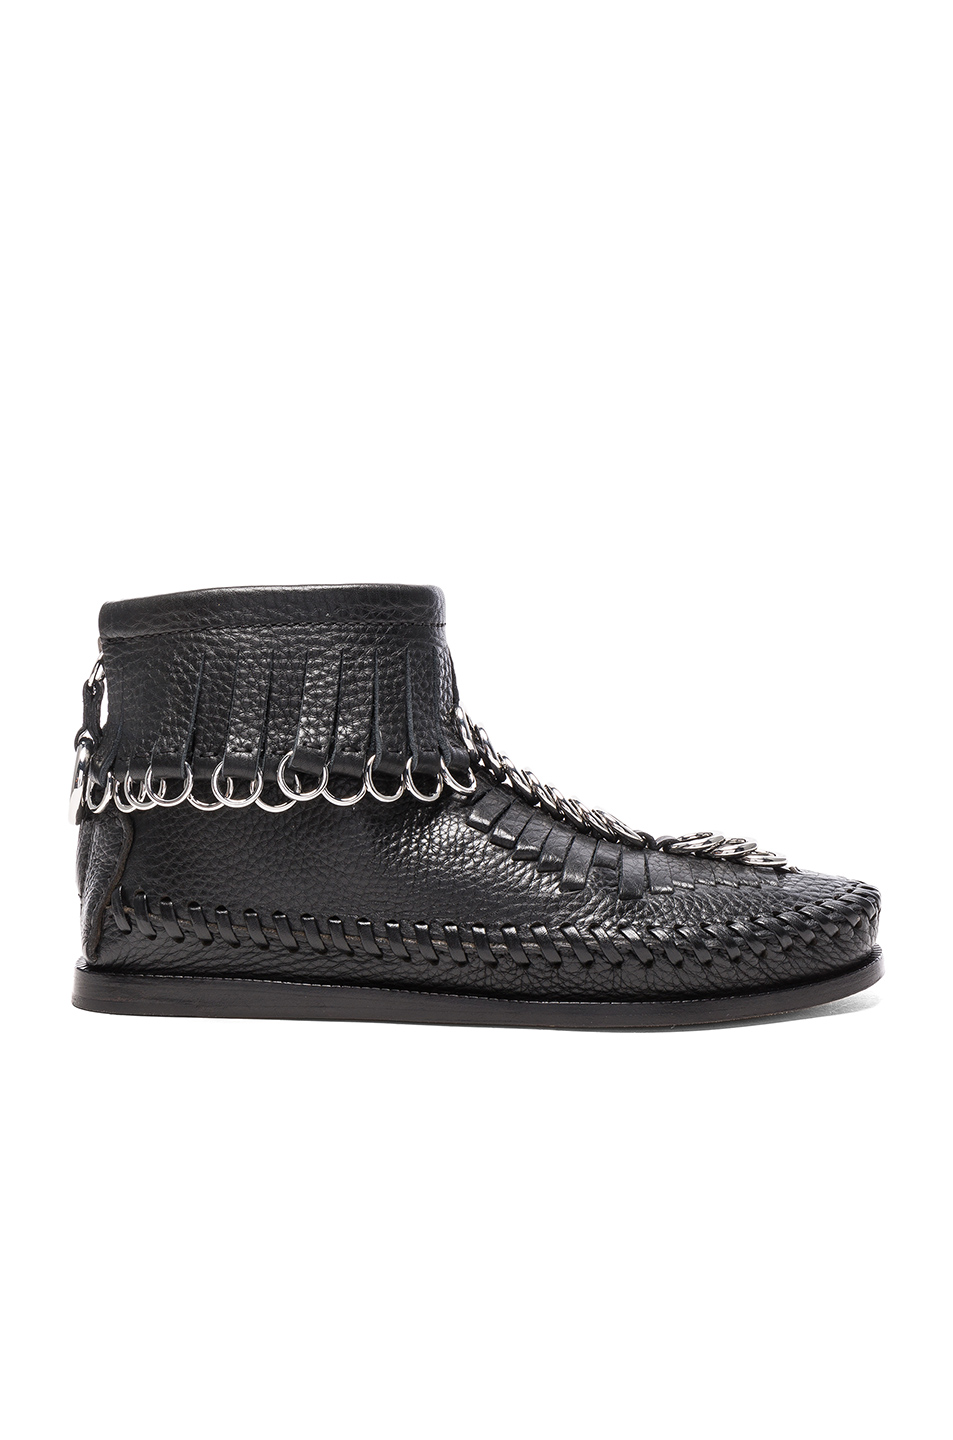 Alexander Wang Leather Montana Boots in Black